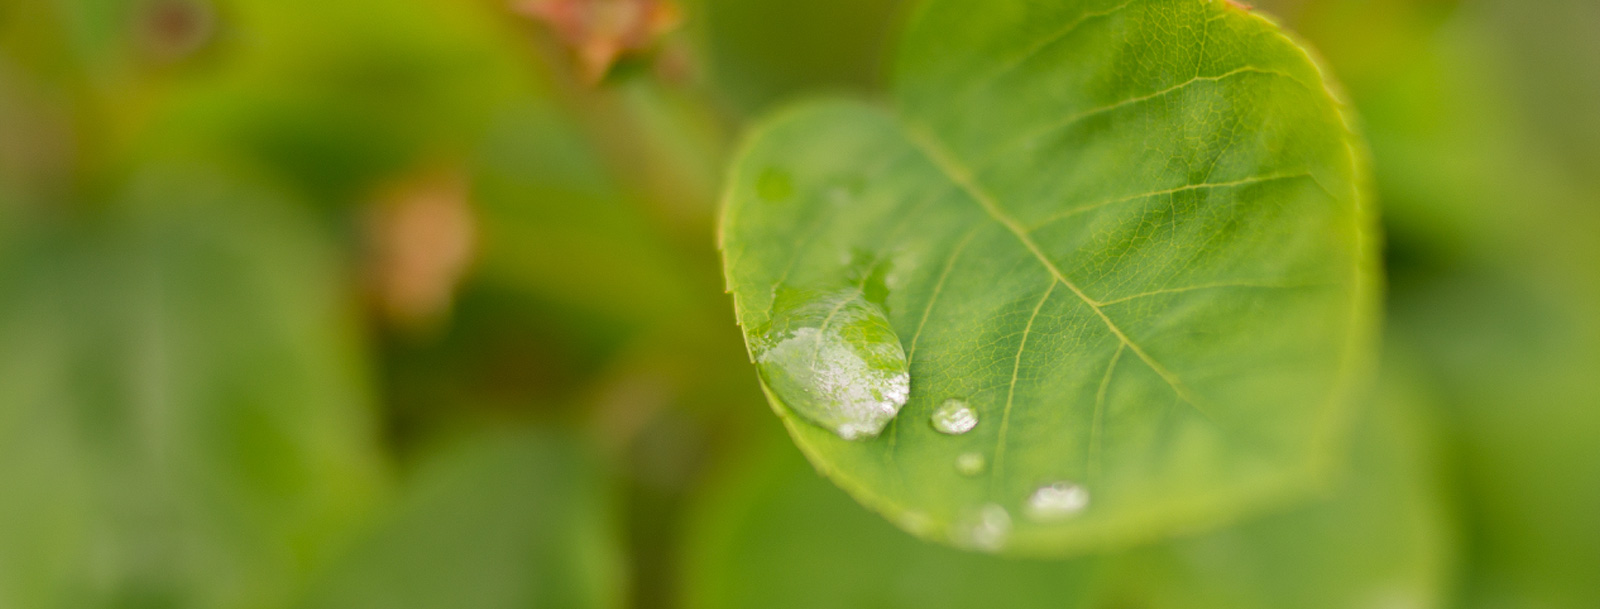 Close-up of water droplets on a leaf